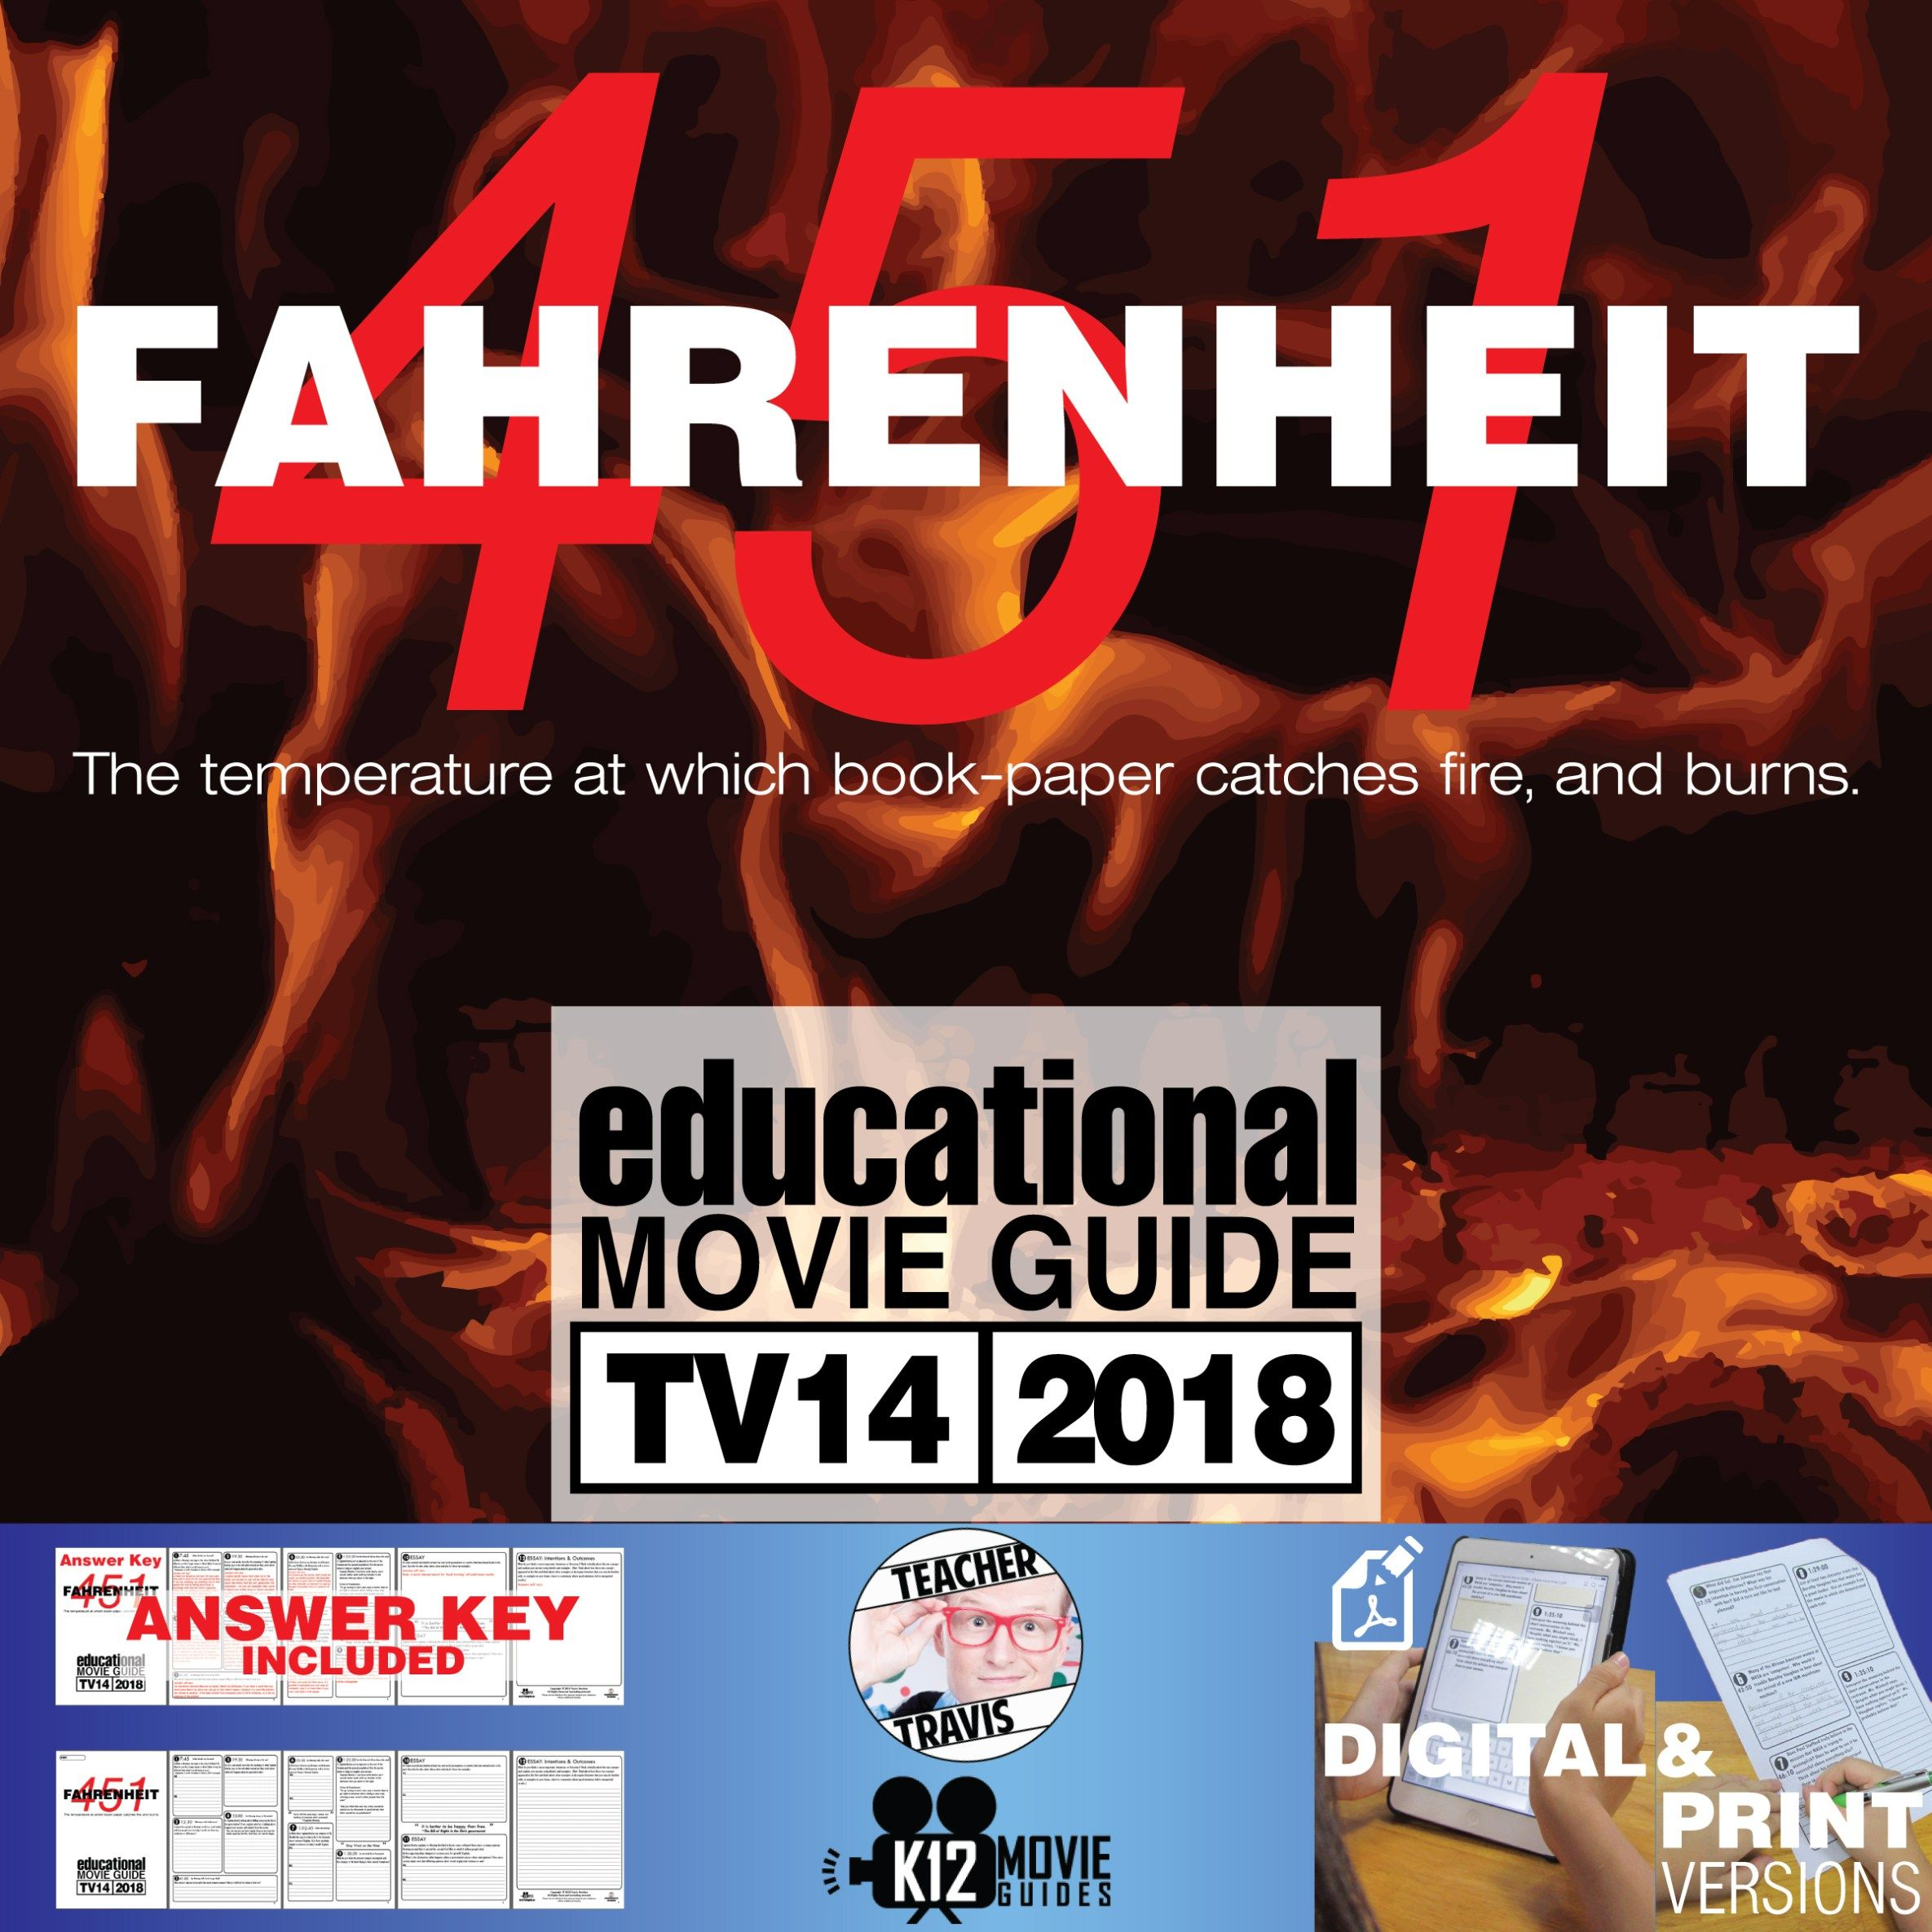 Fahrenheit 451 Movie Guide